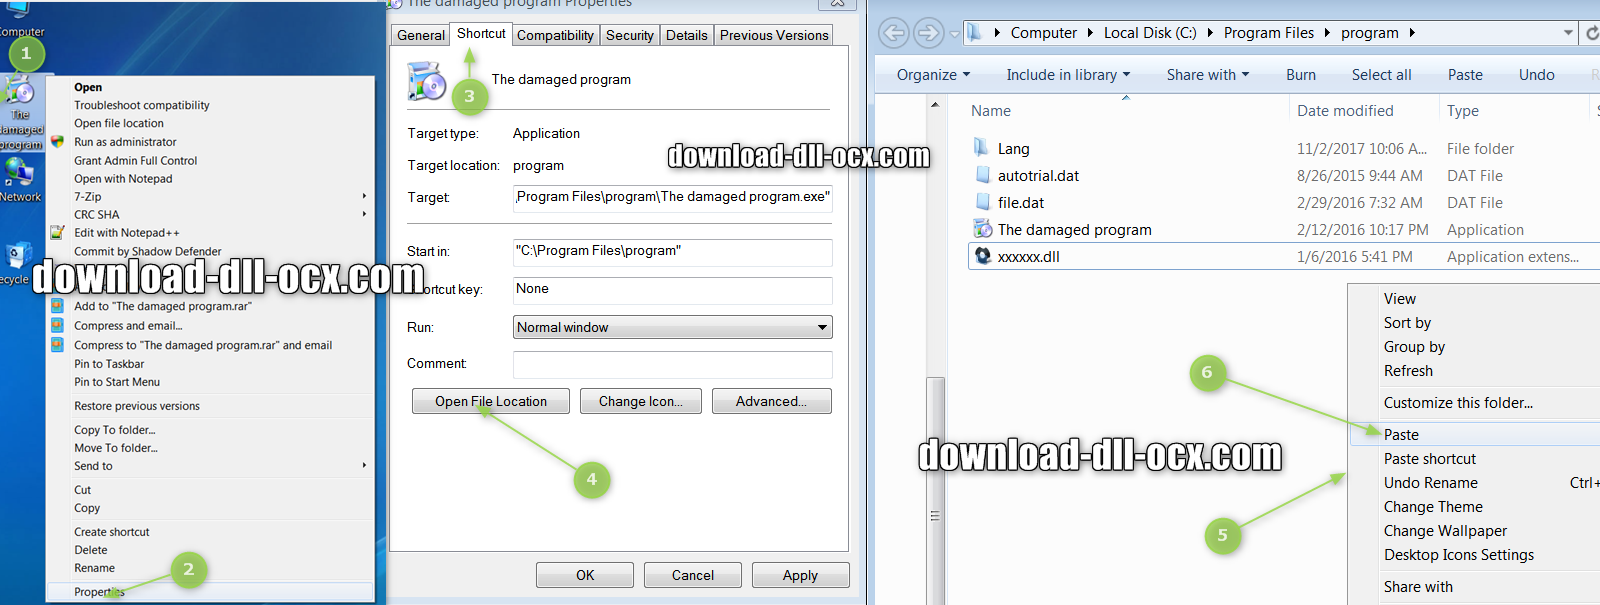 how to install Swds.dll file? for fix missing